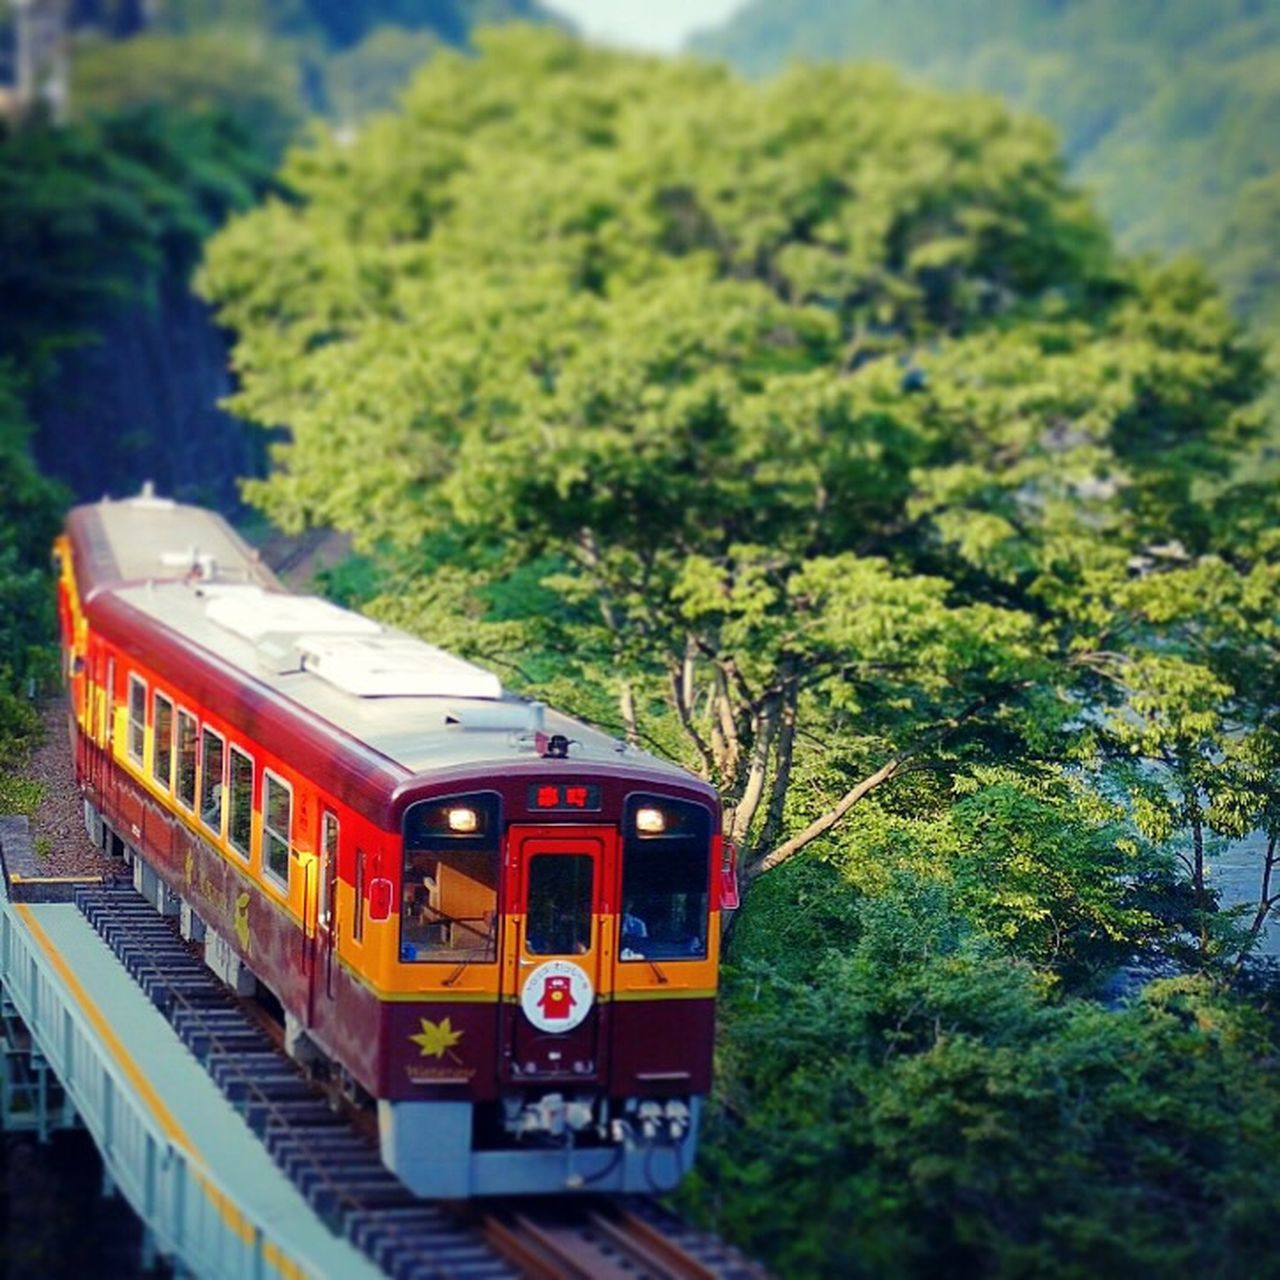 Train わたらせ渓谷鉄道 Transportation Train - Vehicle Mode Of Transport Public Transportation Rail Transportation Tree Railroad Track Passenger Train Locomotive No People Land Vehicle Steam Train Day Commuter Train Outdoors Nature Sky